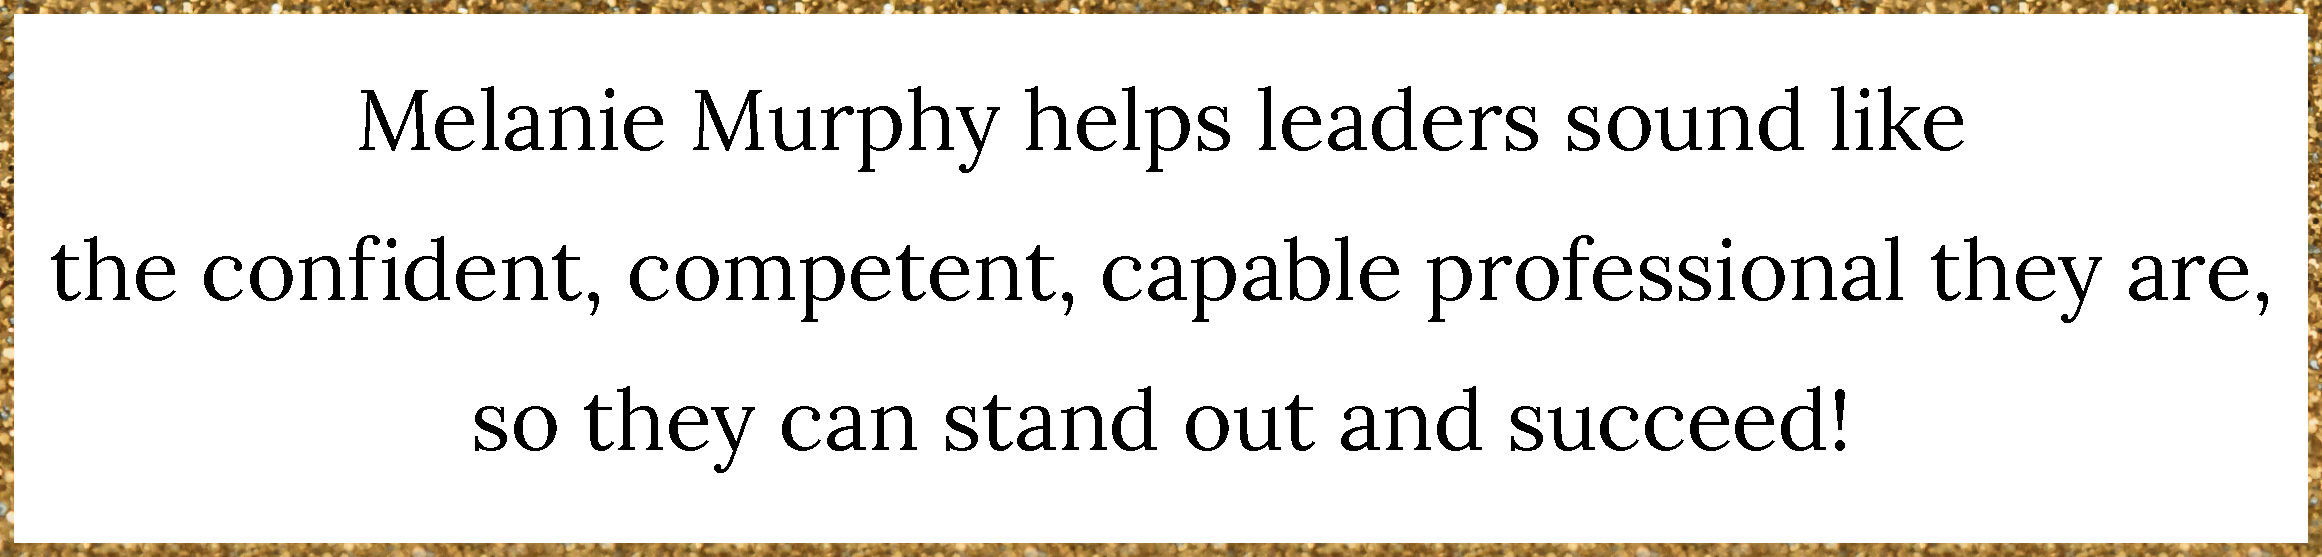 Text-Gold Box.png